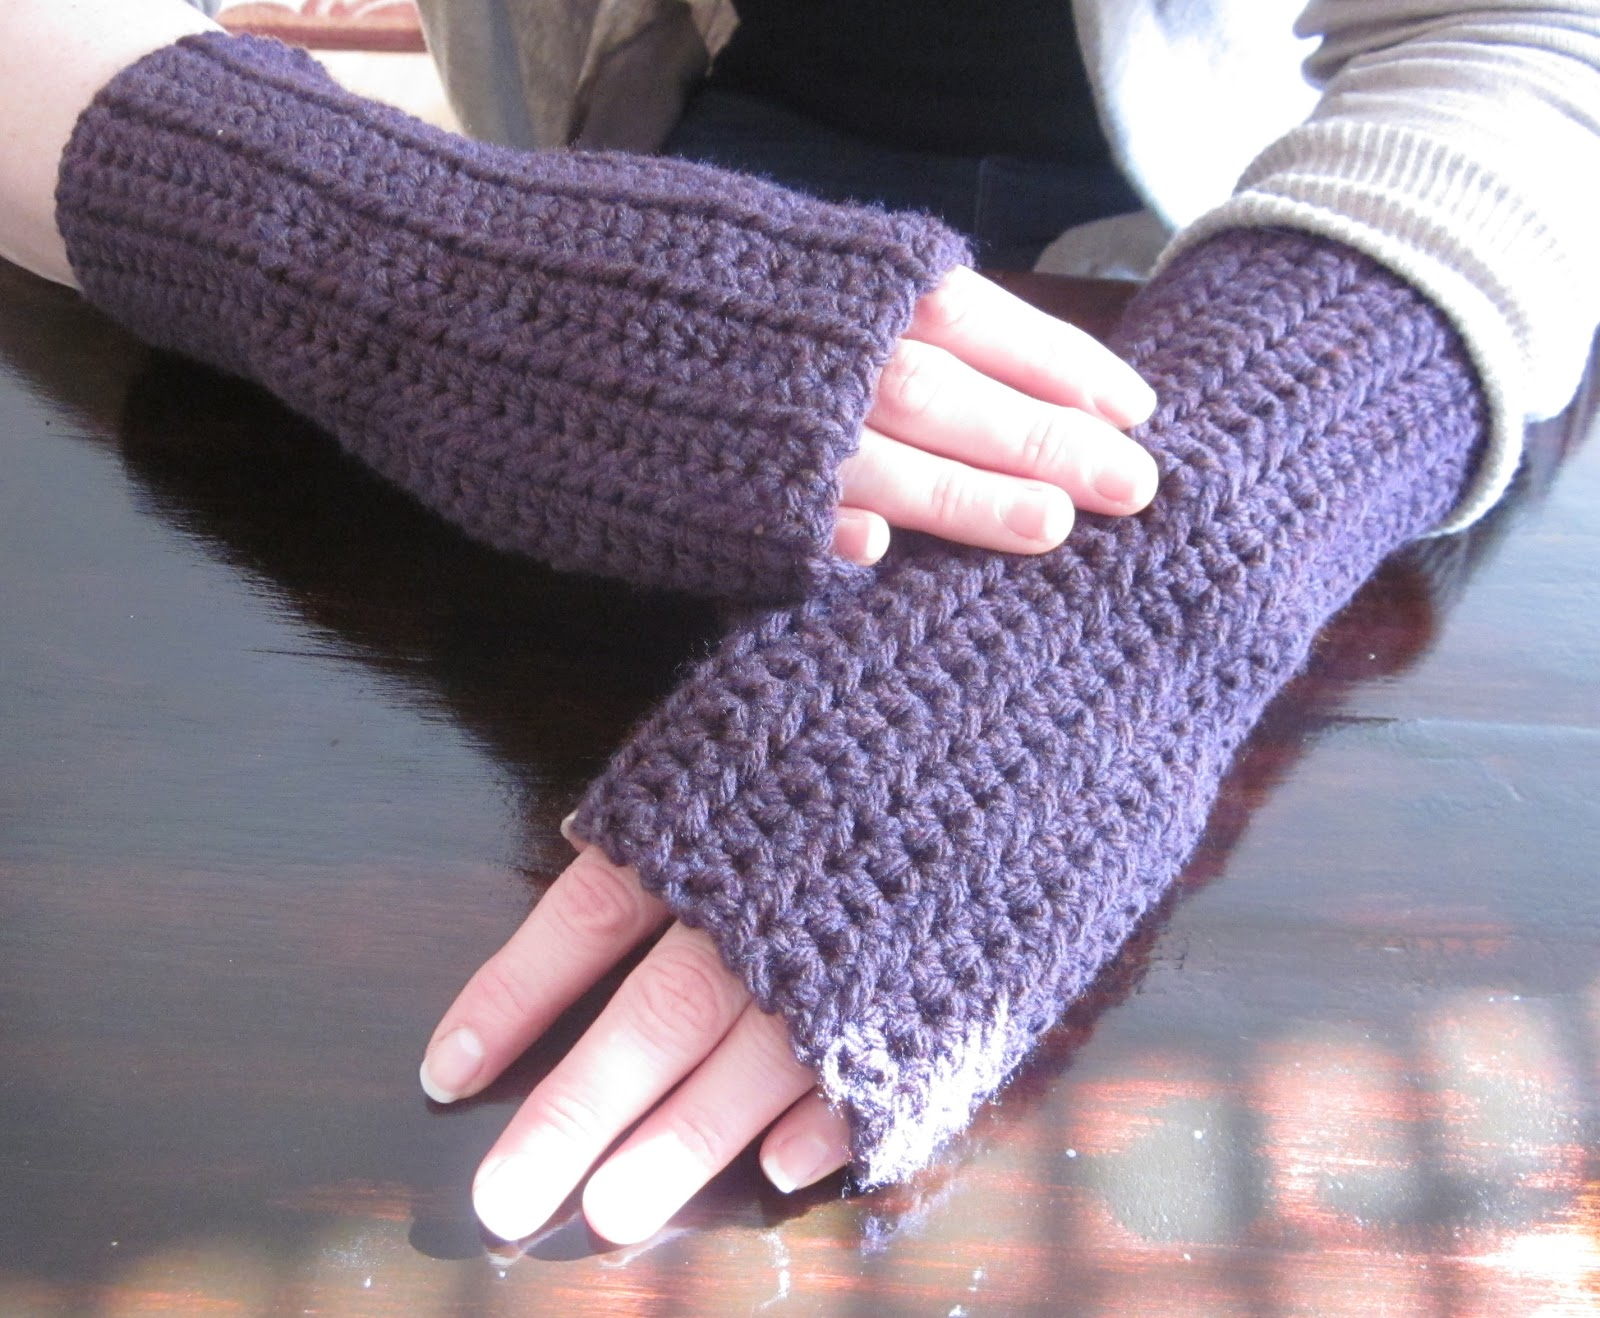 Crochet Gloves : The Crafty Novice: DIY Crochet: Fingerless Gloves